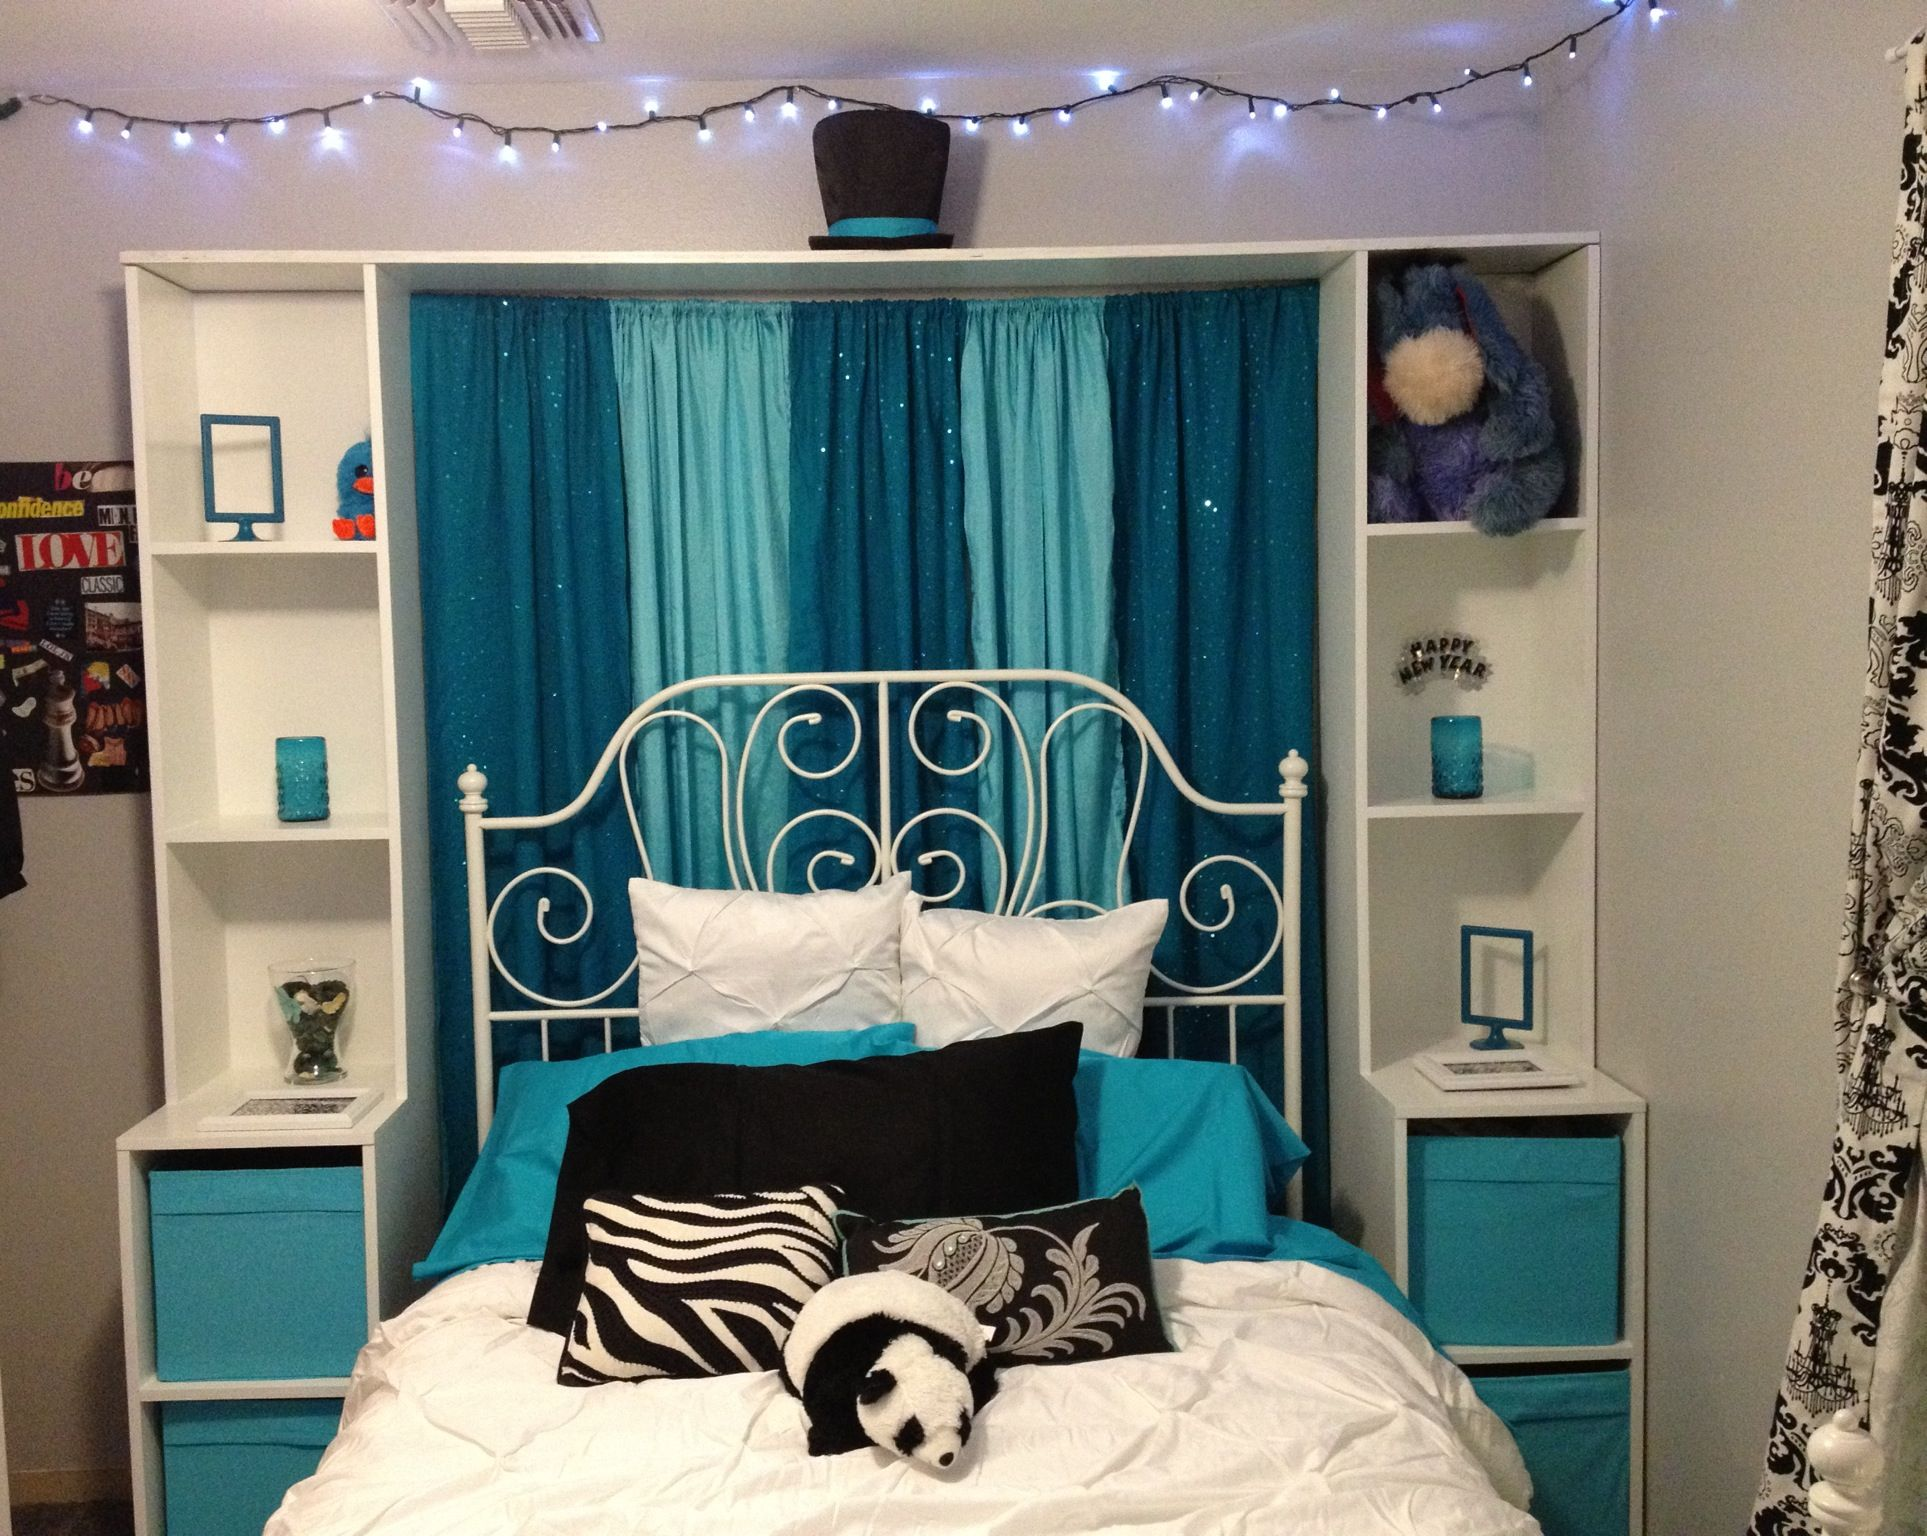 14 Year Old Room Ideas Teal And Aqua Black And White Bedroom Redo For My 14 Year